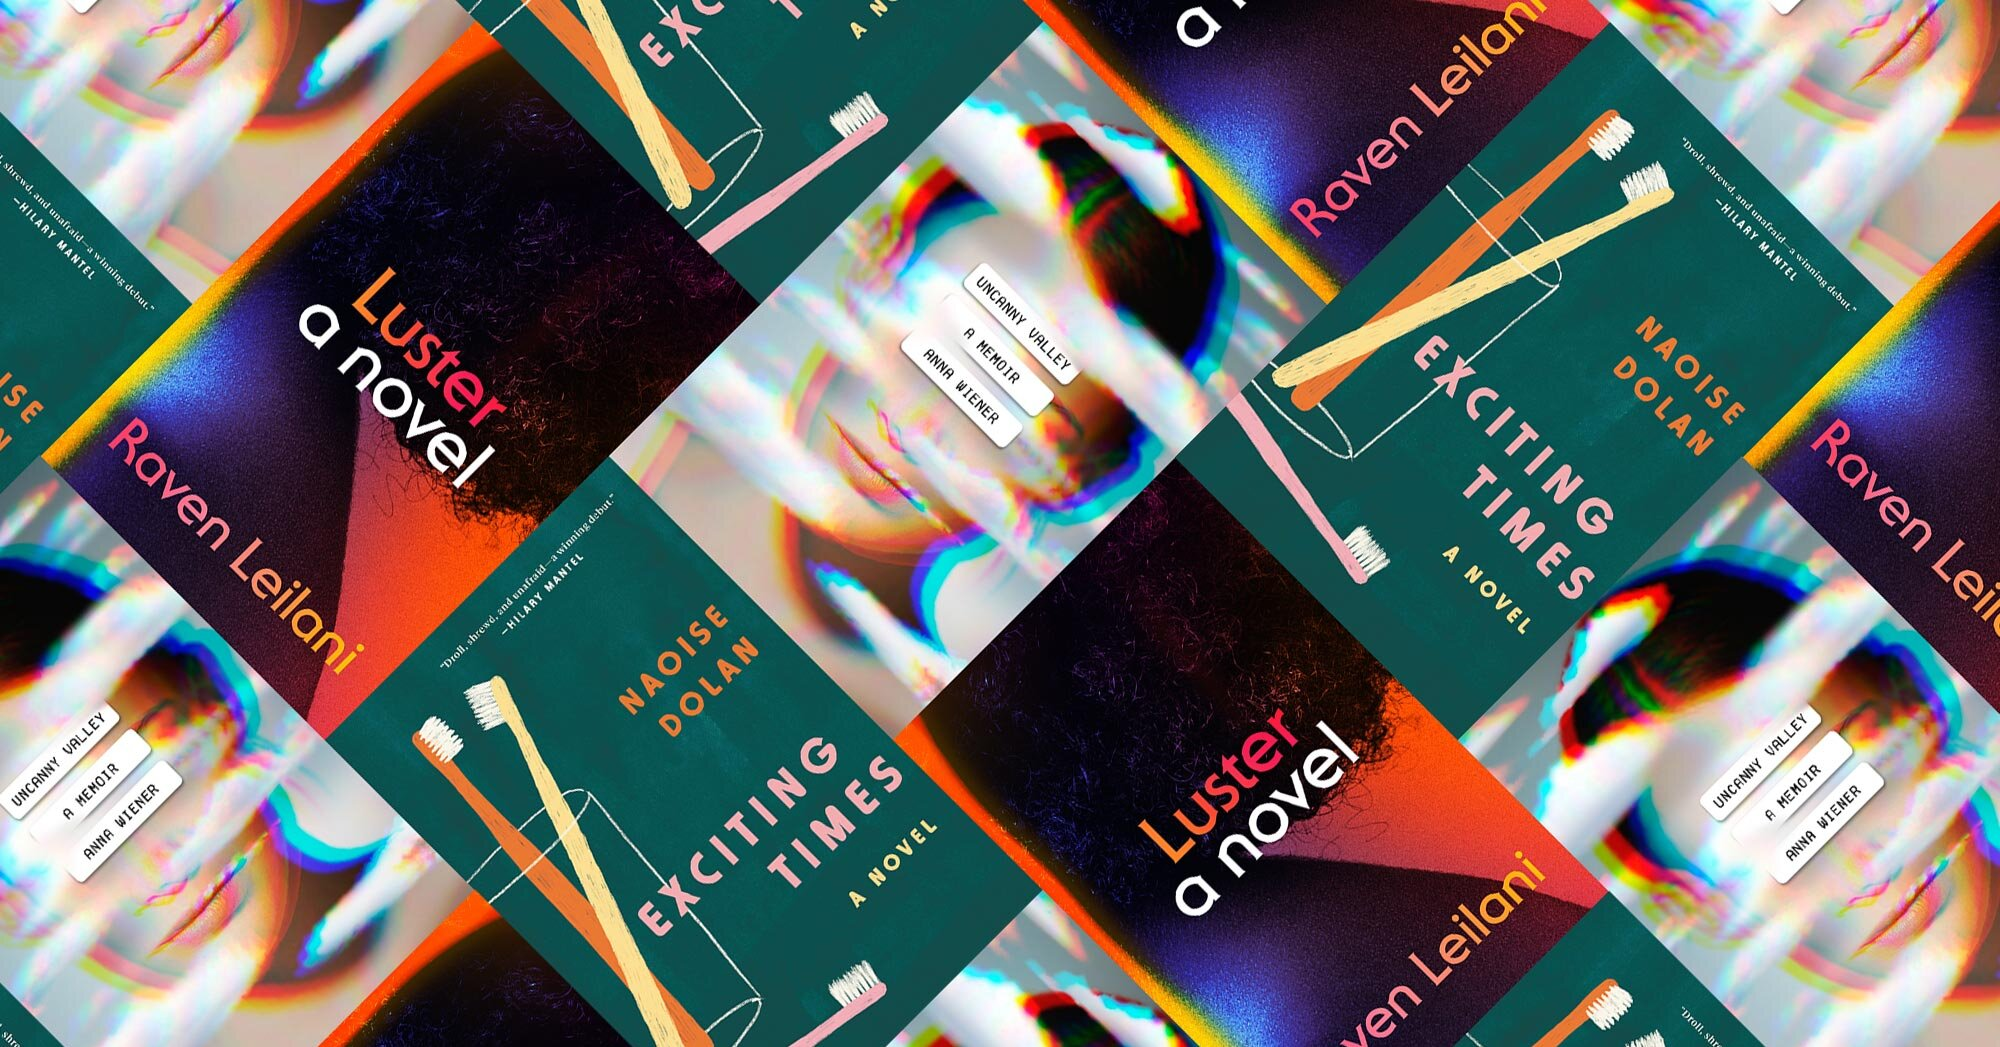 The most millennial books of 2020